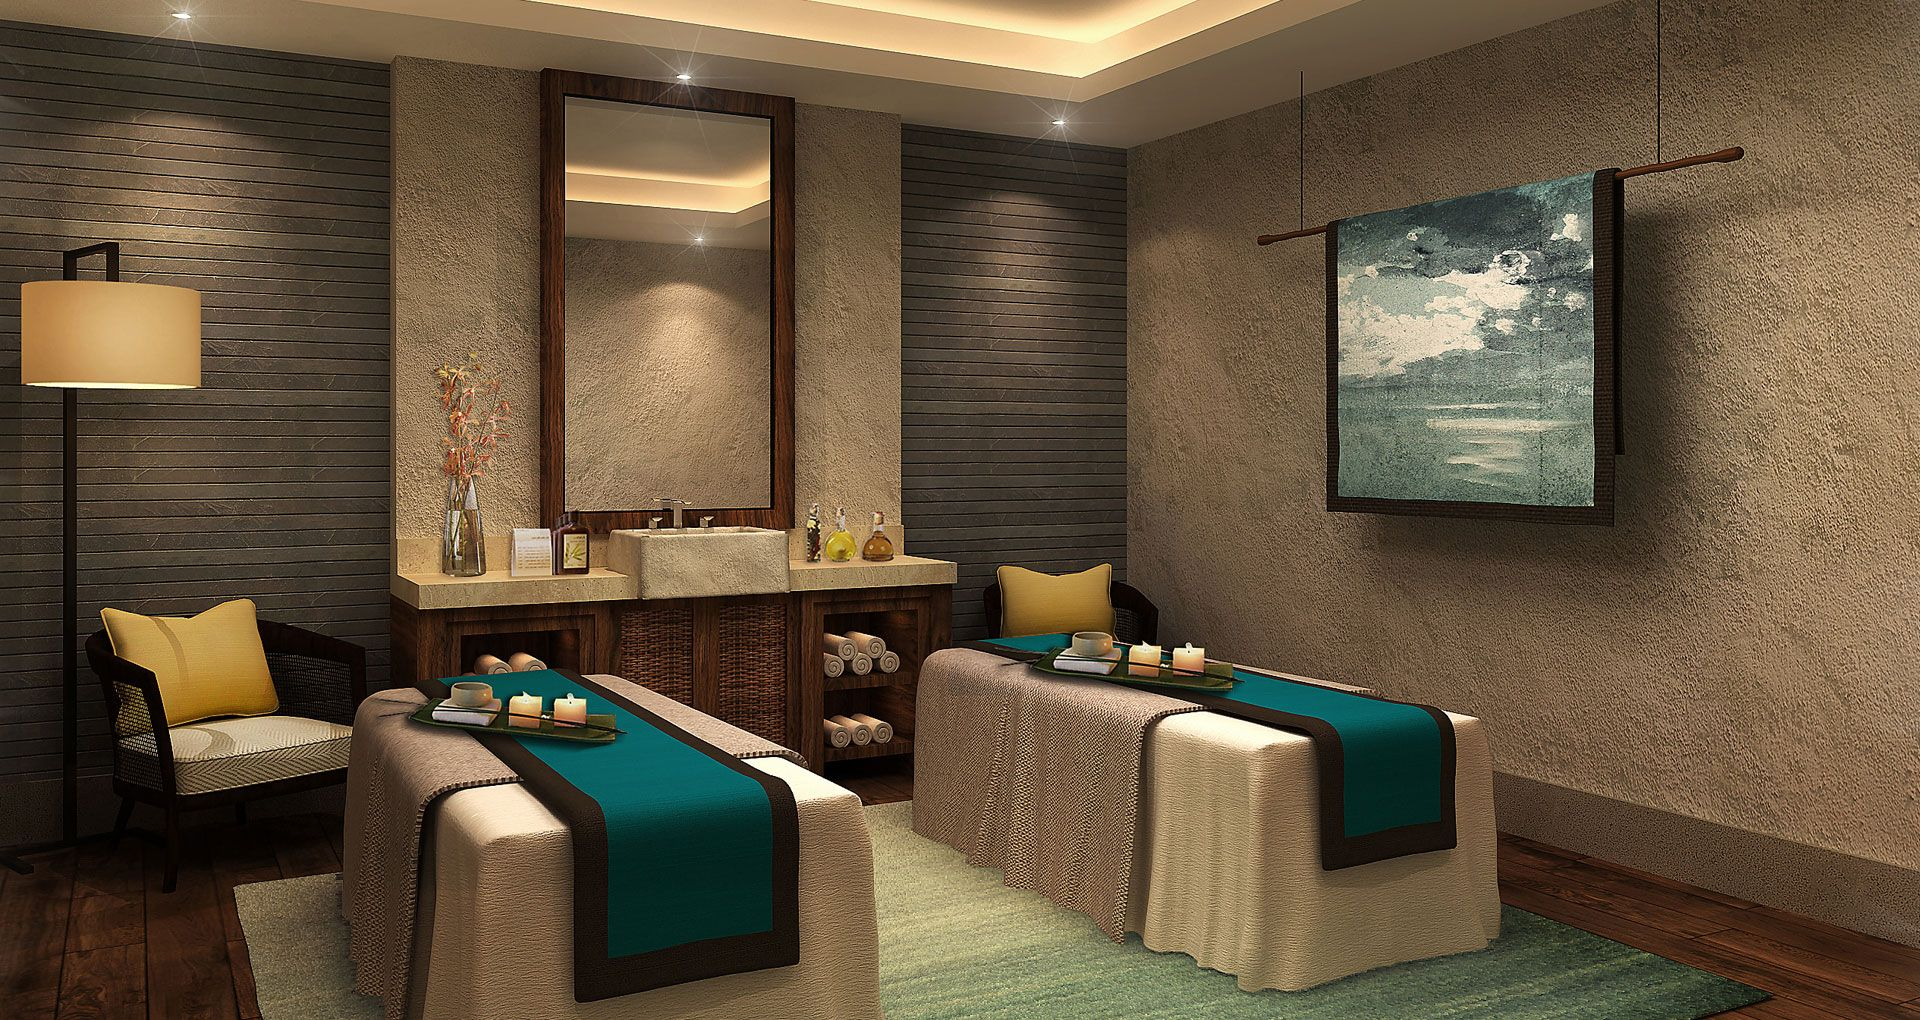 Zhangzhou half moon hill hot spring resort spa interior for Interior design for salon